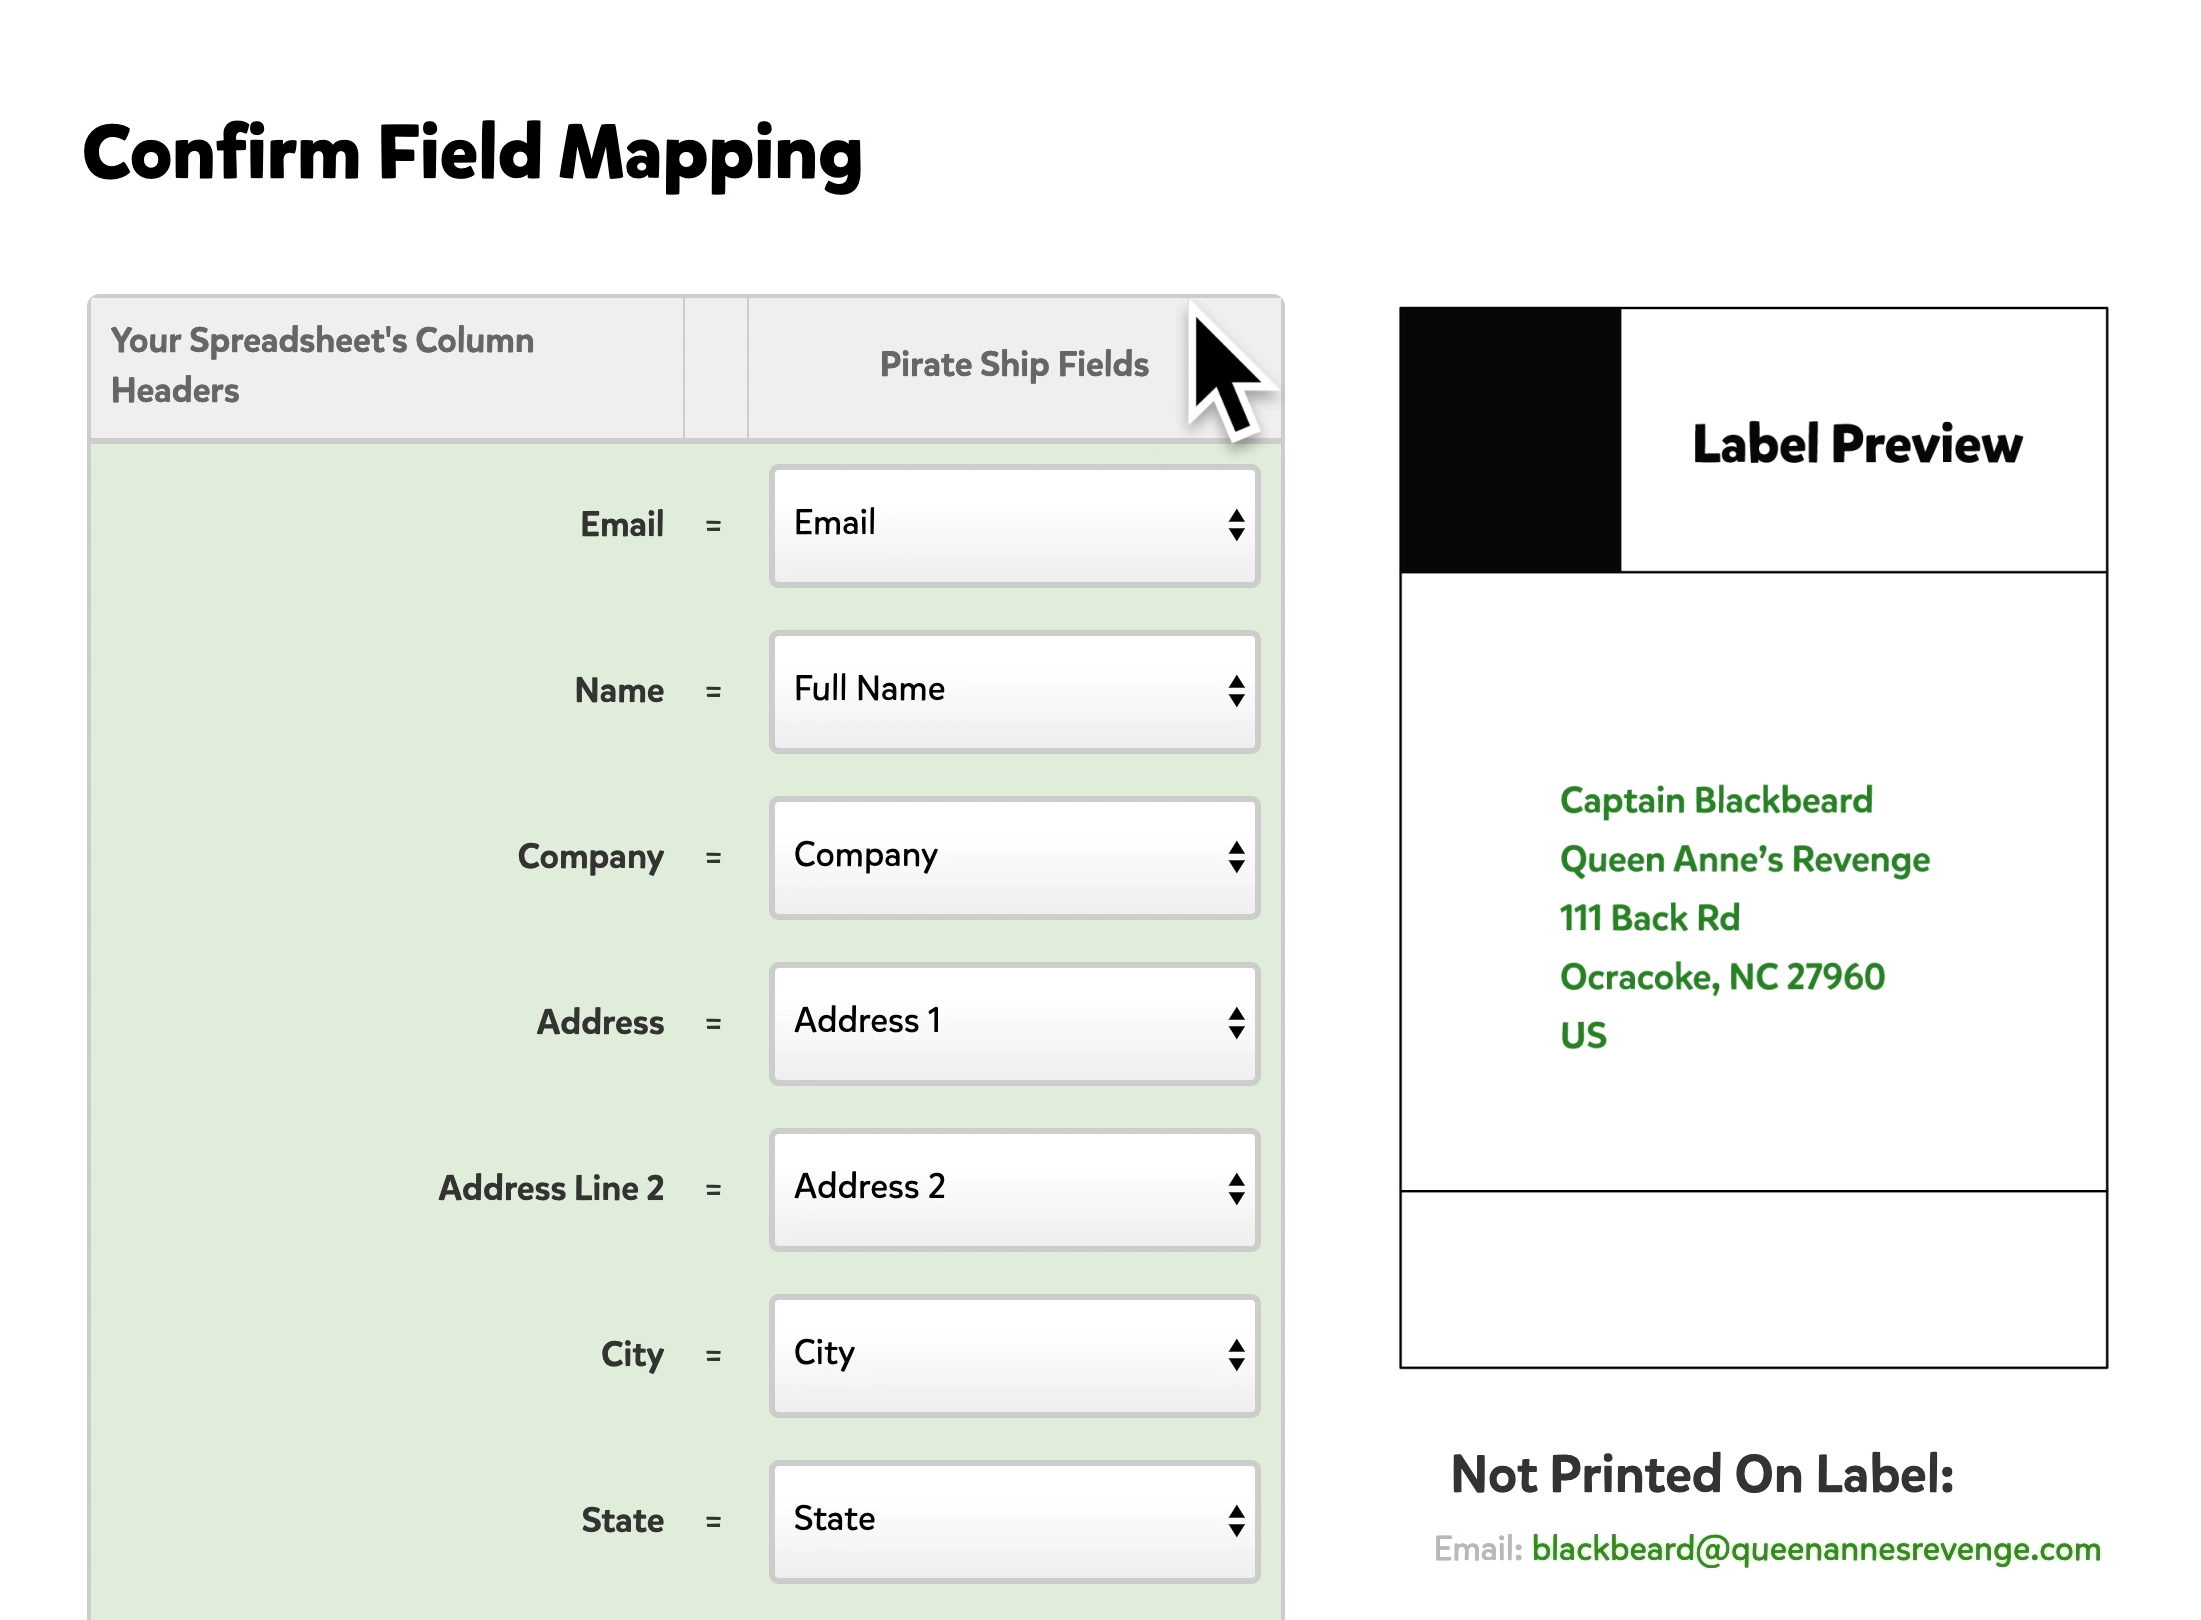 A screenshot showing the Field Mapping page that appears after a spreadsheet is uploaded. The different column headers on your spreadsheet are listed towards the left, and drop down menus to map this data appears on the right.